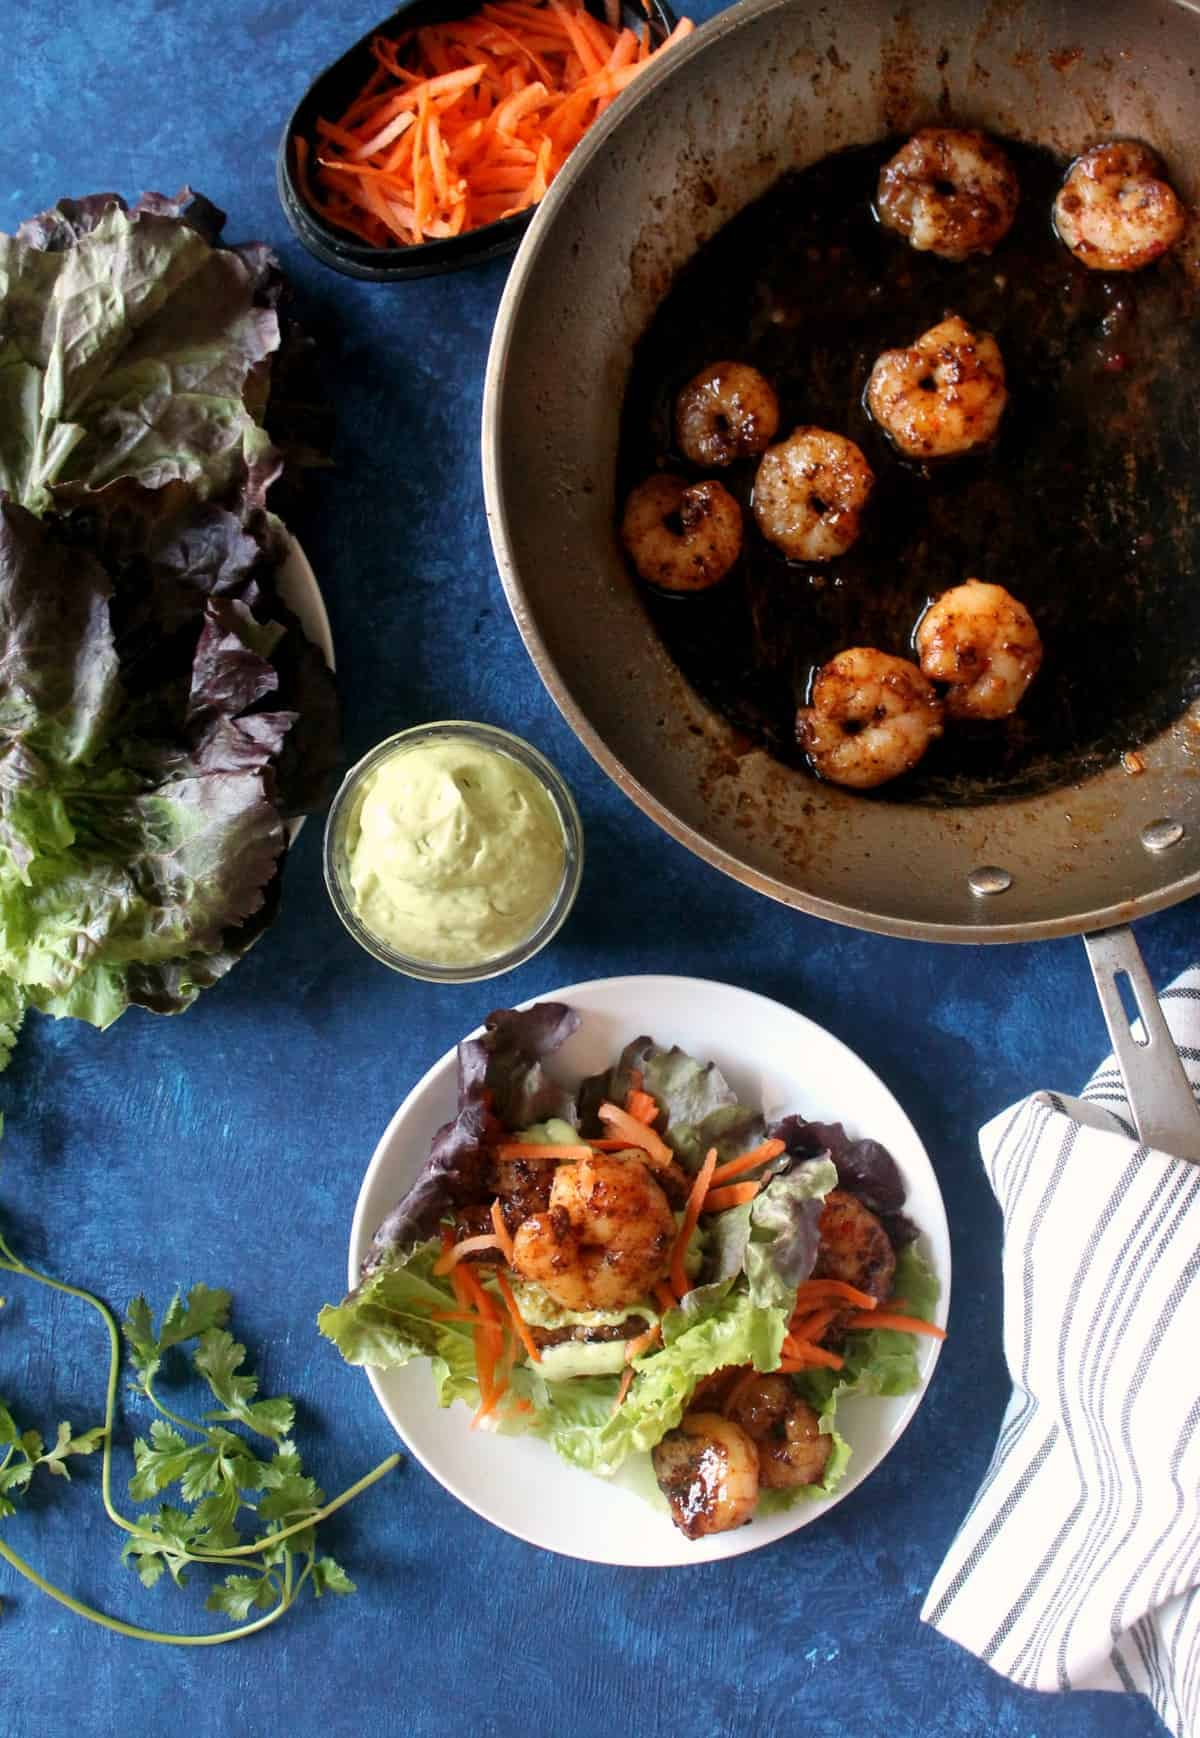 Sweet Amp Spicy Shrimp Lettuce Wraps With Avocado Cream